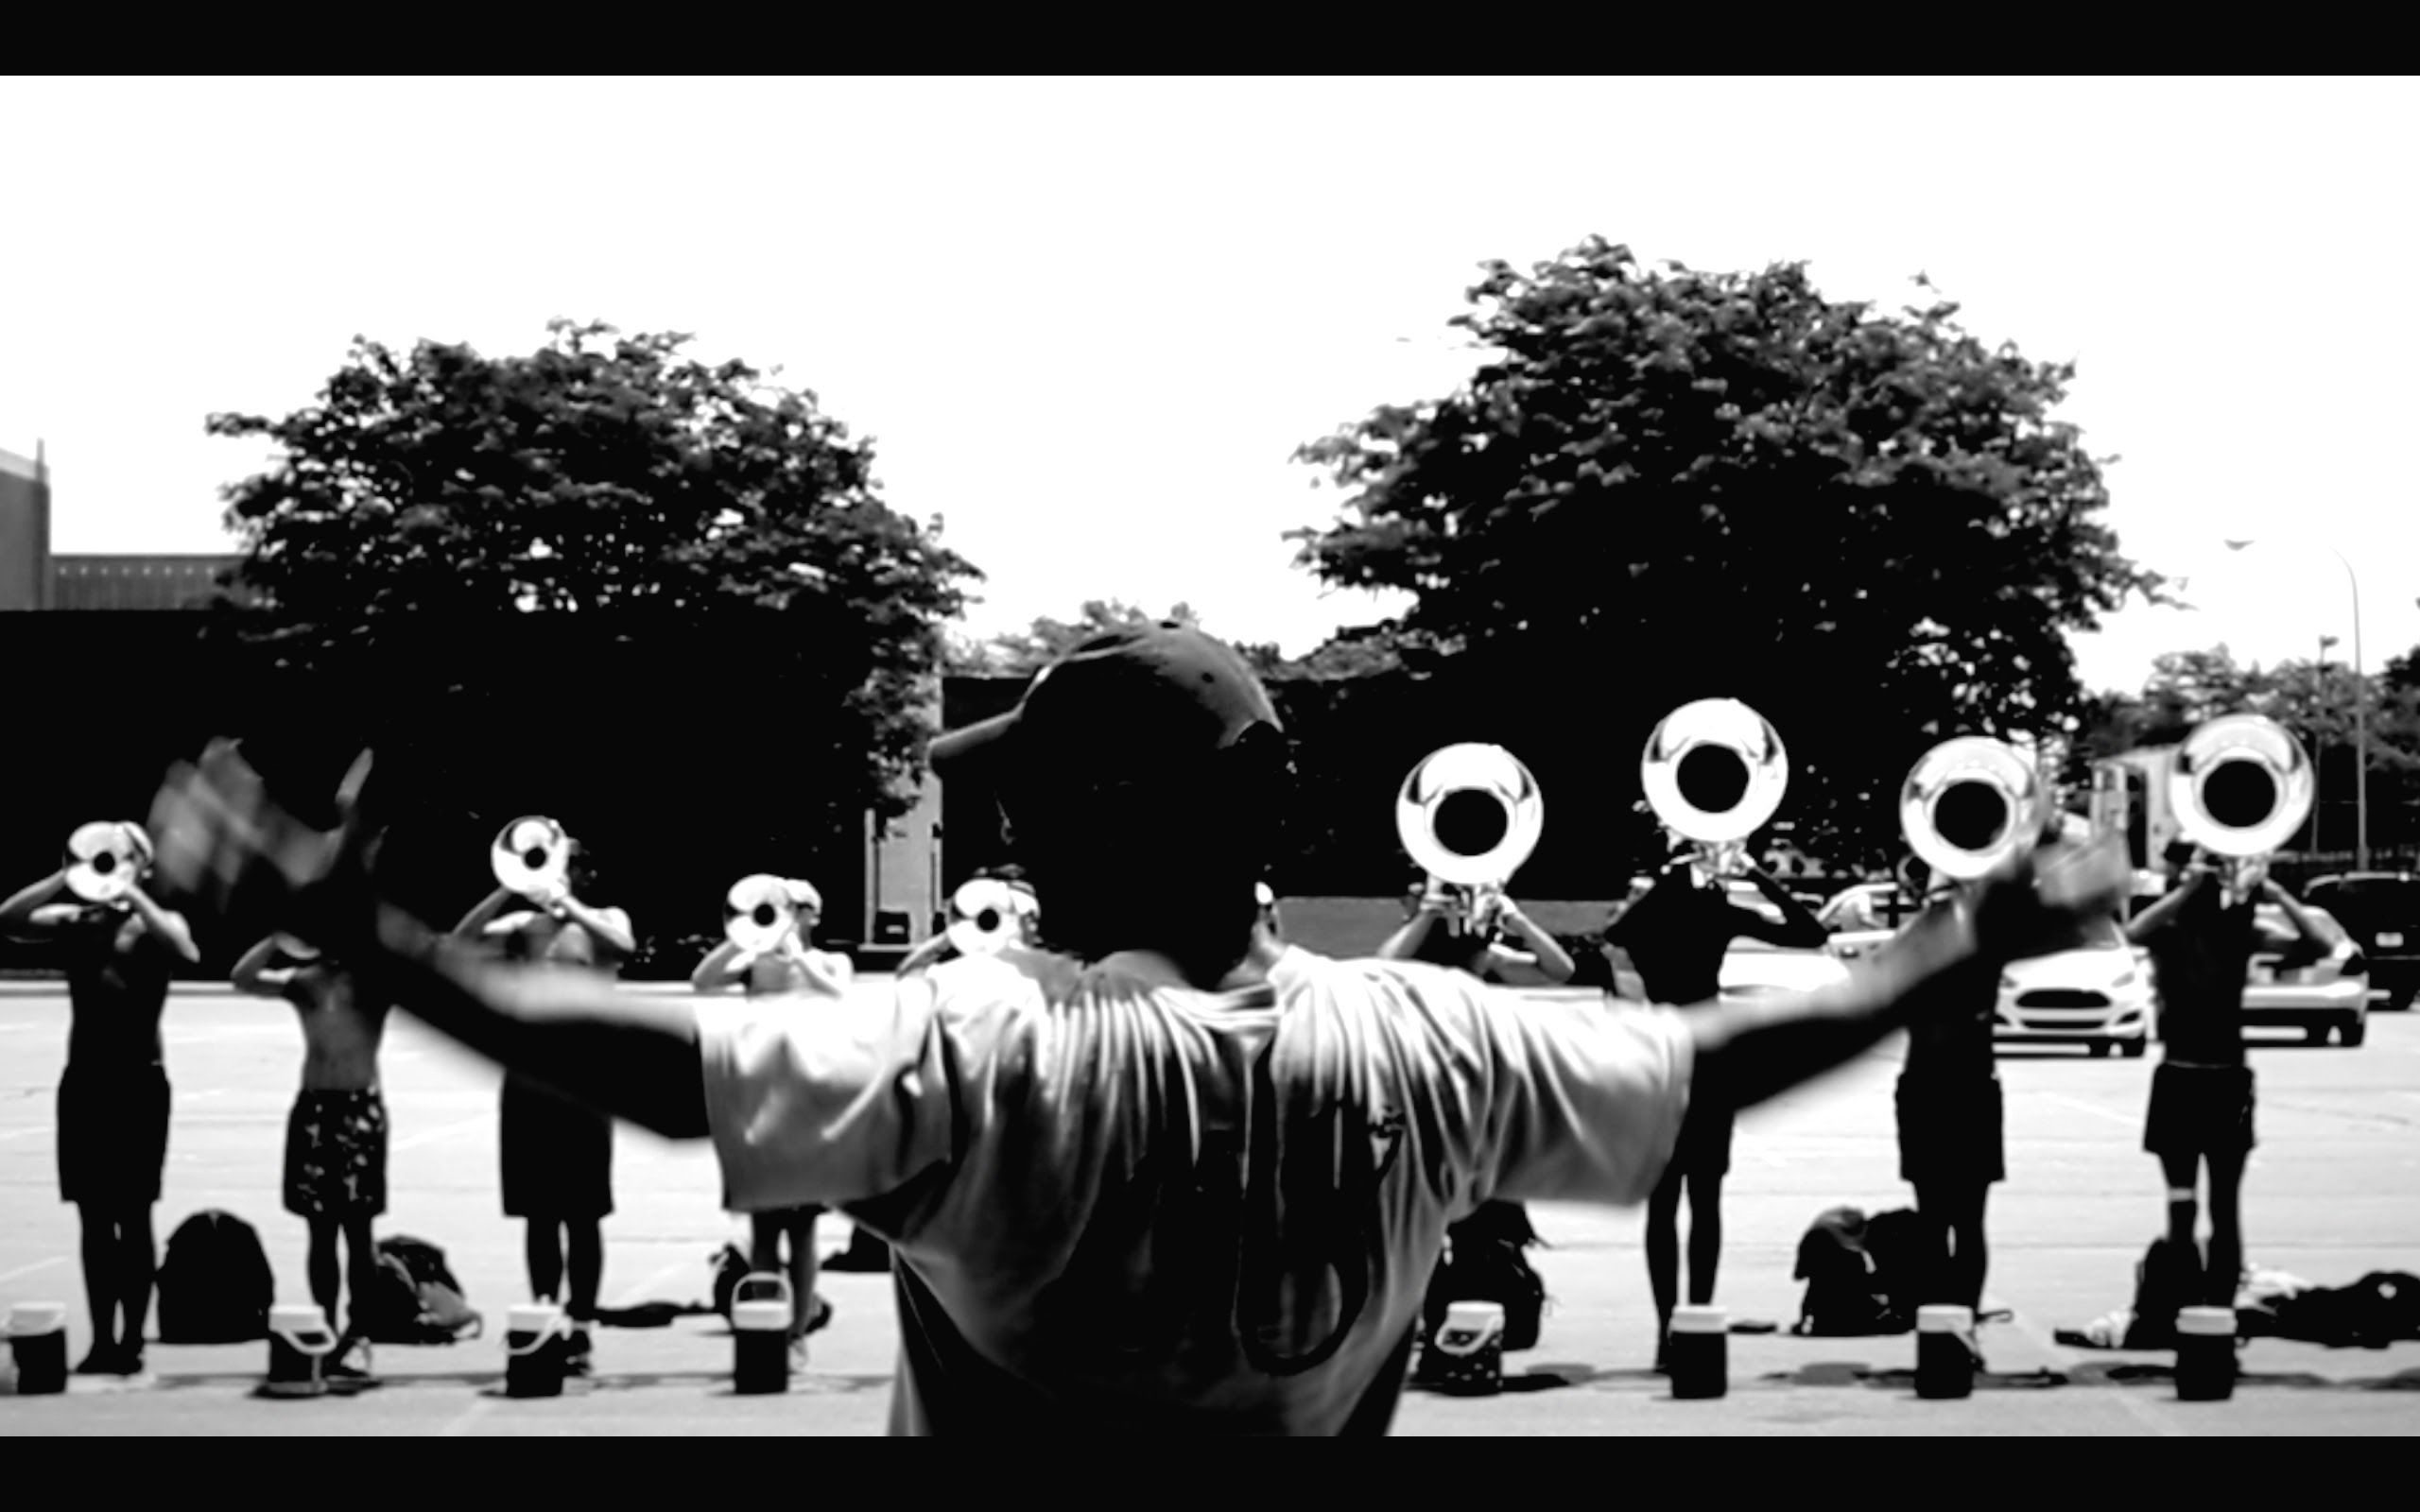 Cadets 2014 - Exploring The Cadets Sound [Quality Audio]